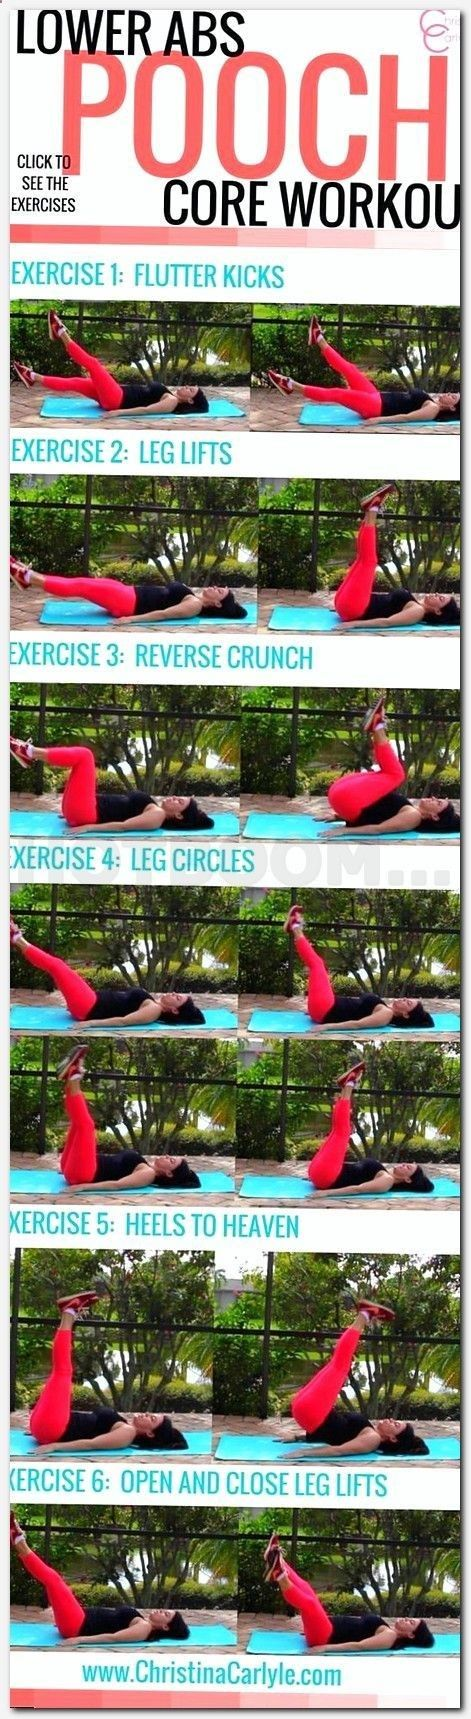 The 25 best weight for height ideas on pinterest baby height after yoga diverticulitis and tomato seeds instant weight loss tricks two week weight loss challenge zero carb diet weight loss how to start eating nvjuhfo Images